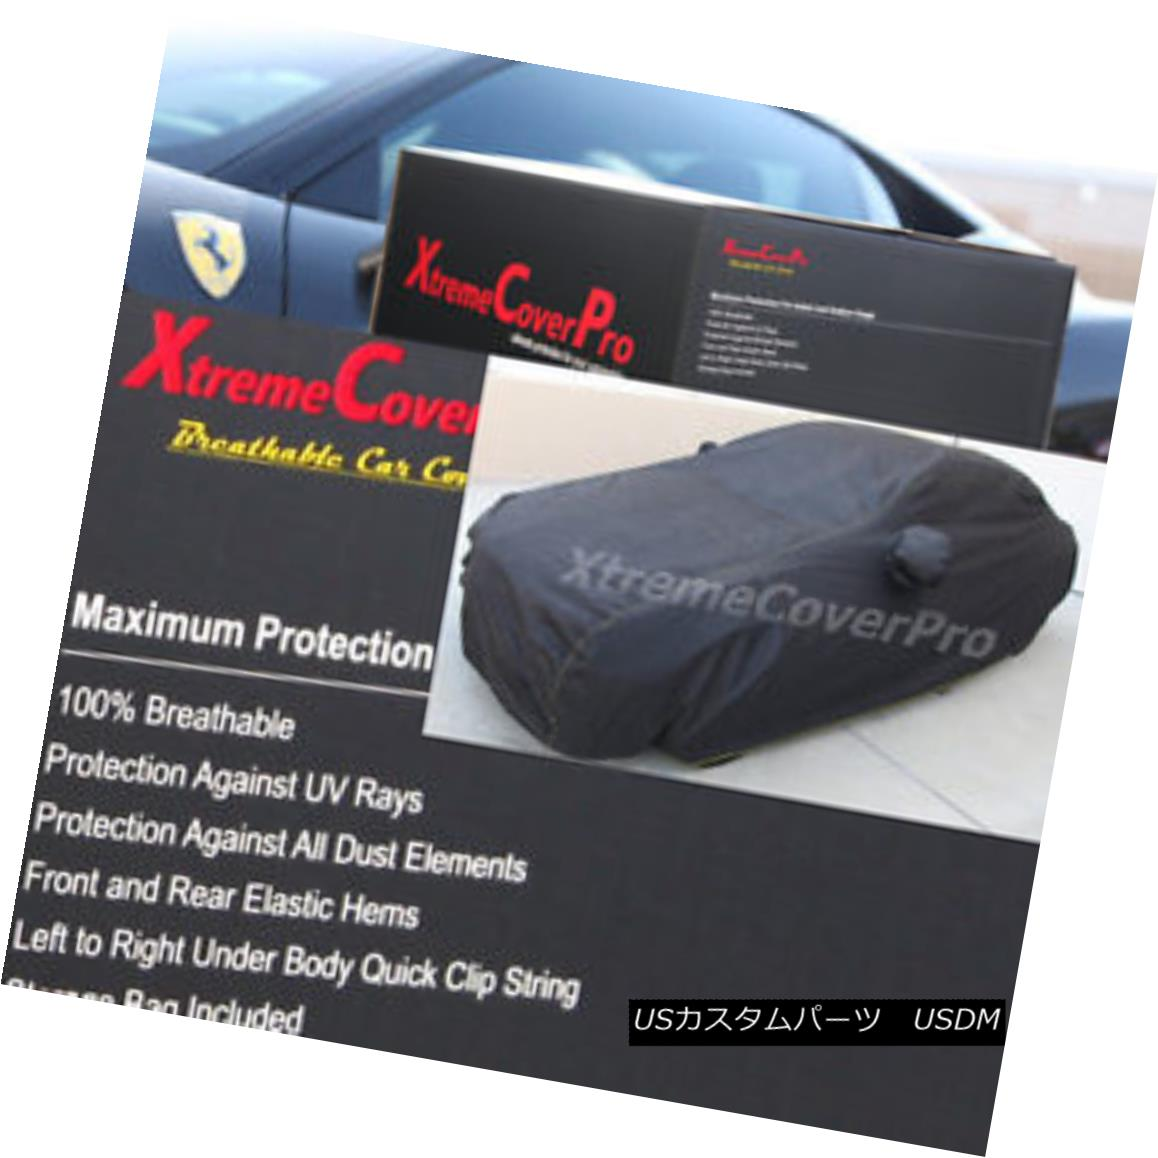 カーカバー 2003 2004 Mercedes C230 C240 C280 C320 C350 Breathable Car Cover w/MirrorPocket 2003年2004年メルセデスC230 C240 C280 C320 C350 MirrorPocket付き通気性車カバー